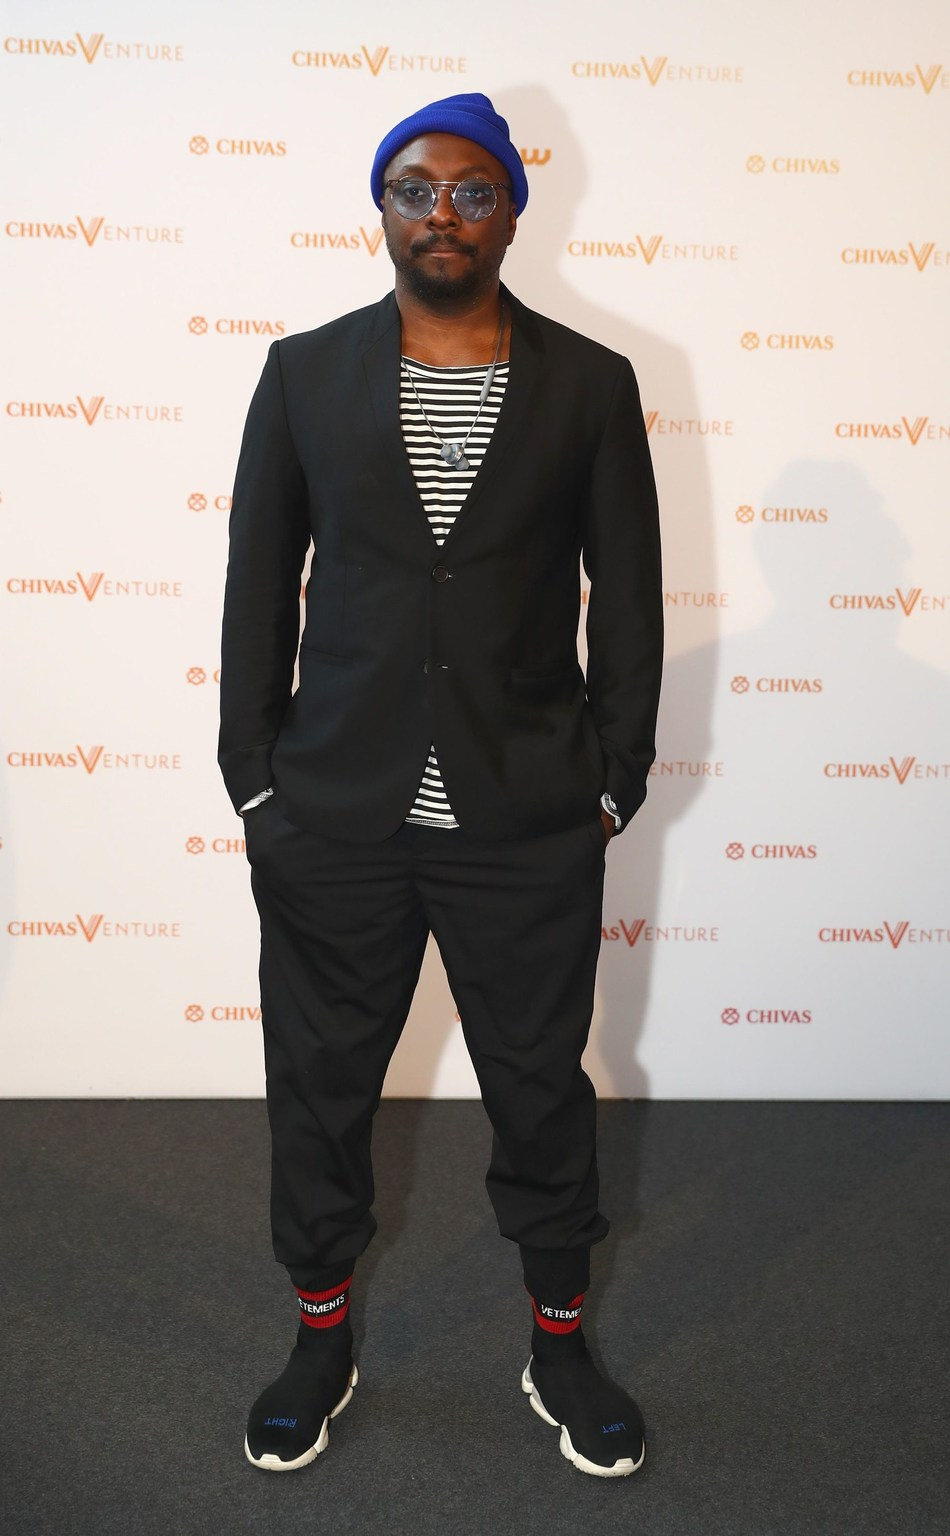 will.i.am attends Chivas Venture 2018 - Chivas Regal's global competition that gives away $1 million in no-strings funding every year to the world's most promising social startups on May 24, 2018 in Amsterdam, Netherlands. (PRNewsfoto/Chivas Venture)